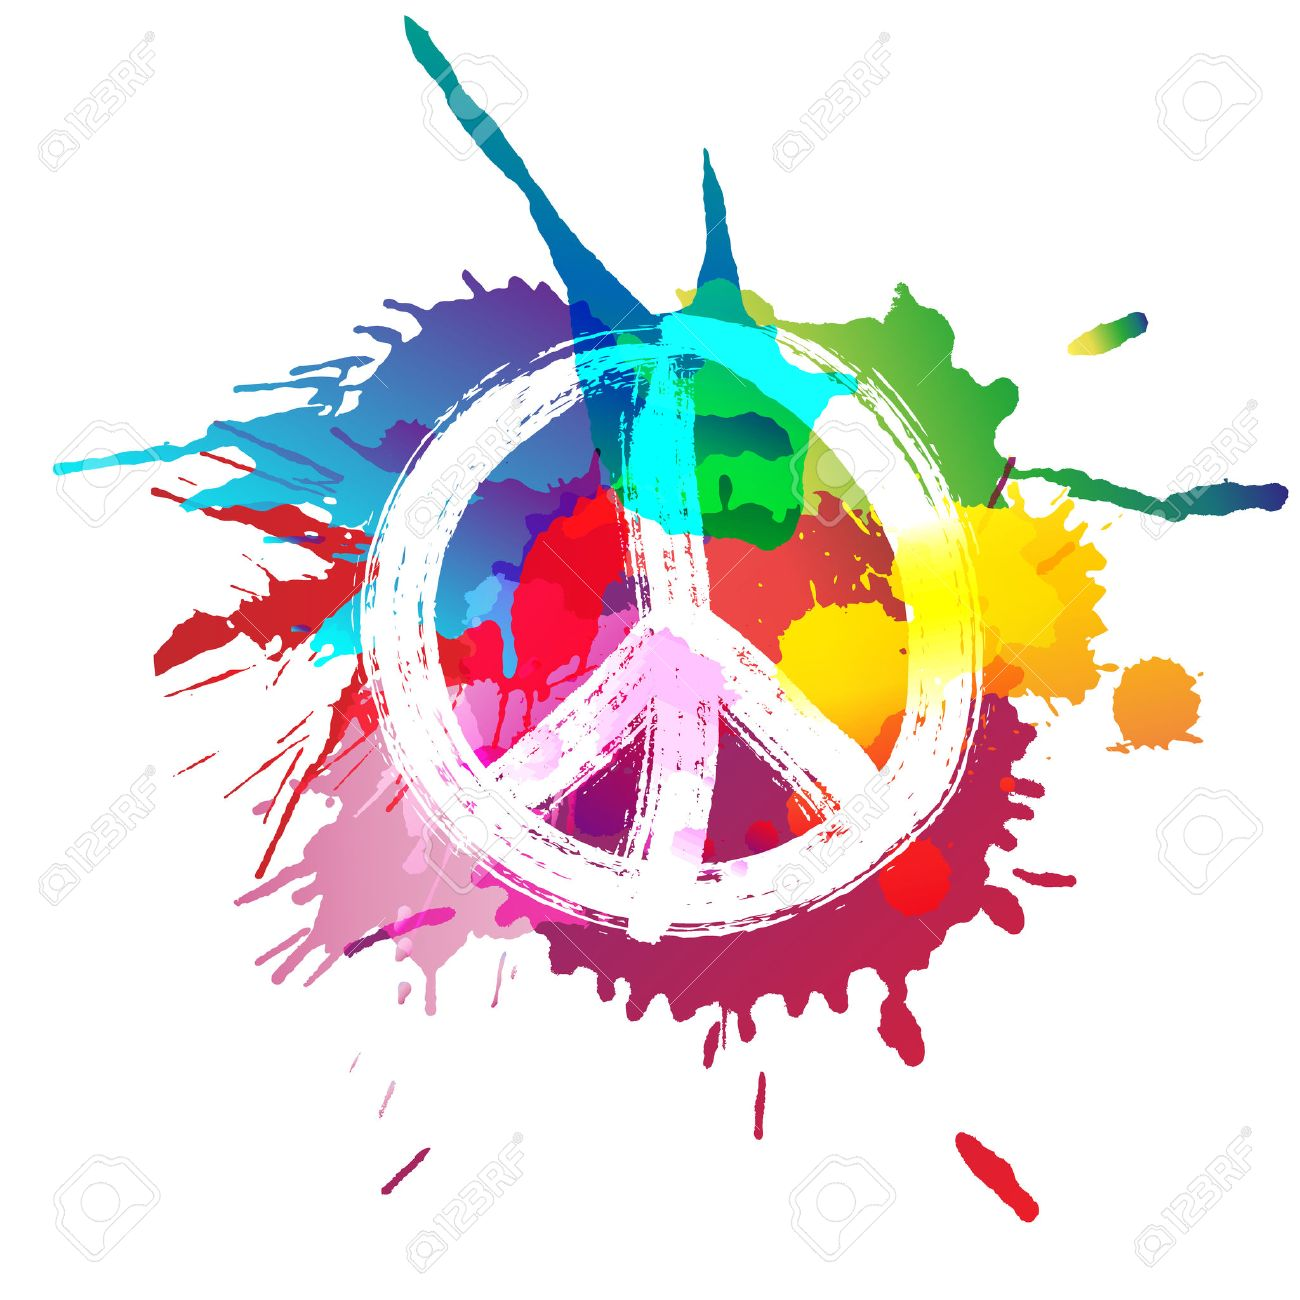 Peace symbol stock photos royalty free peace symbol images and peace sign in front of colorful splashes illustration biocorpaavc